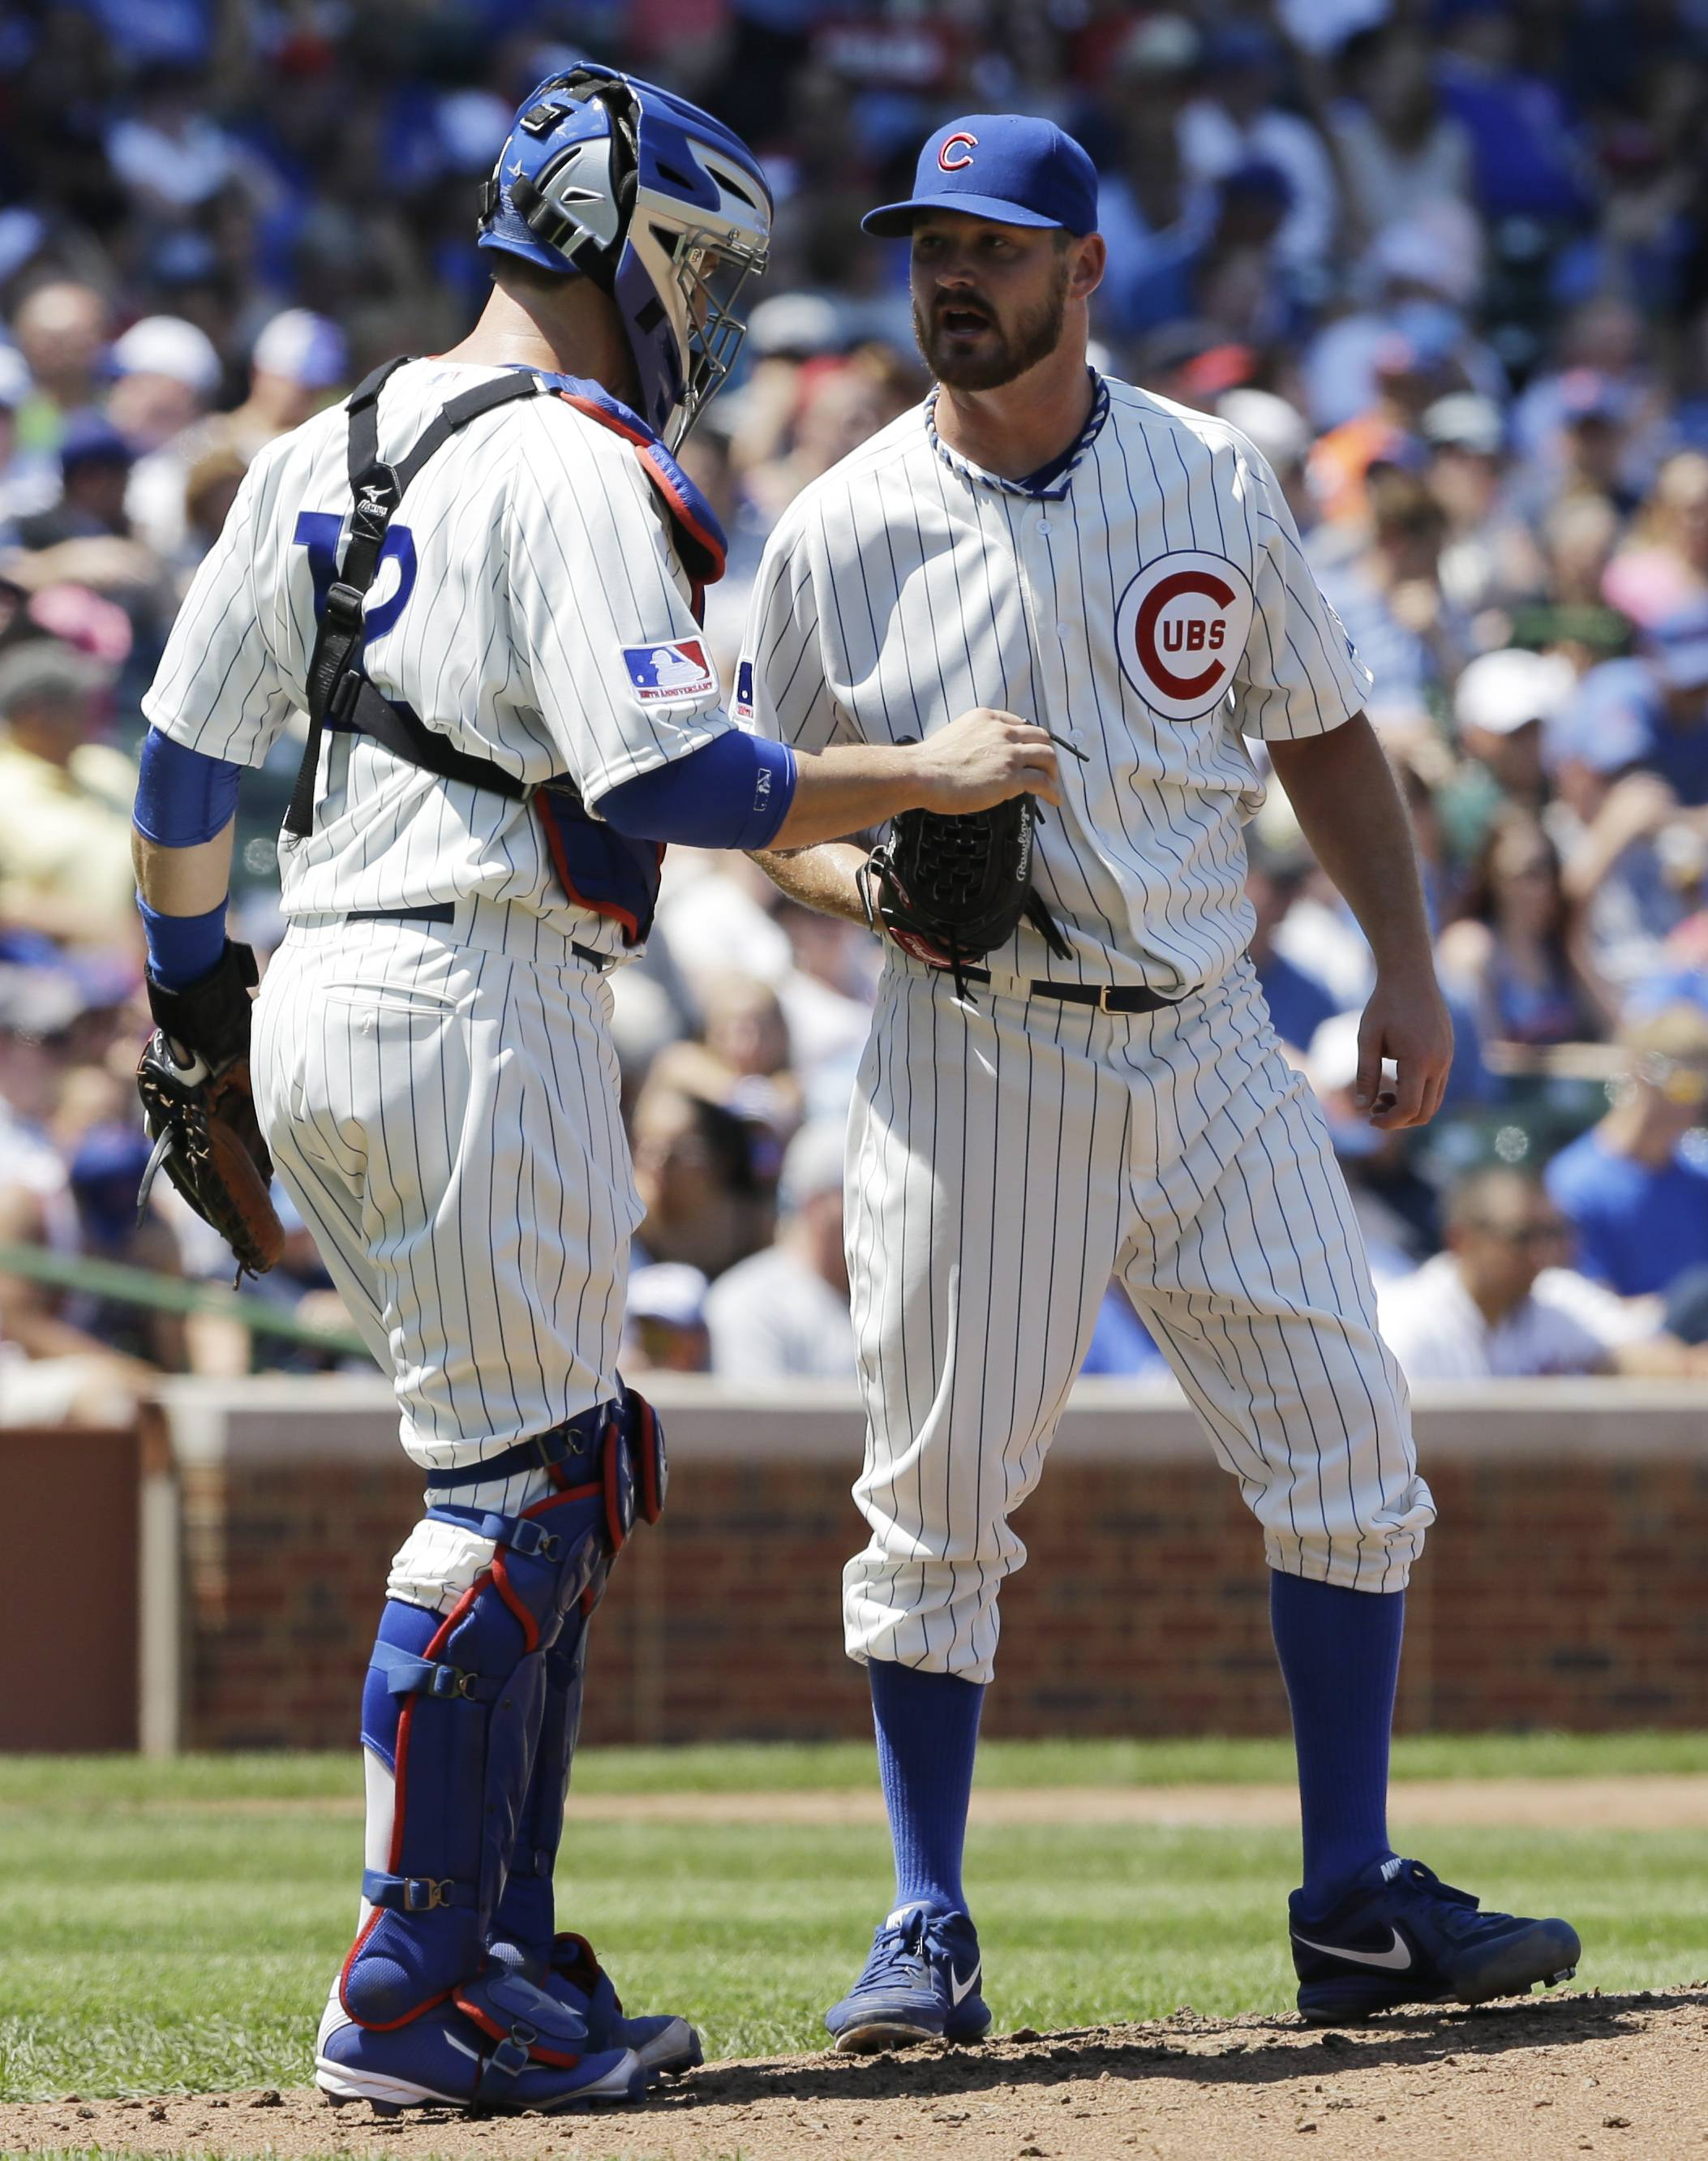 Chicago Cubs starter Travis Wood, right, talks with catcher John Baker during the third inning of a baseball game against the Atlanta Braves in Chicago, Sunday, July 13, 2014.